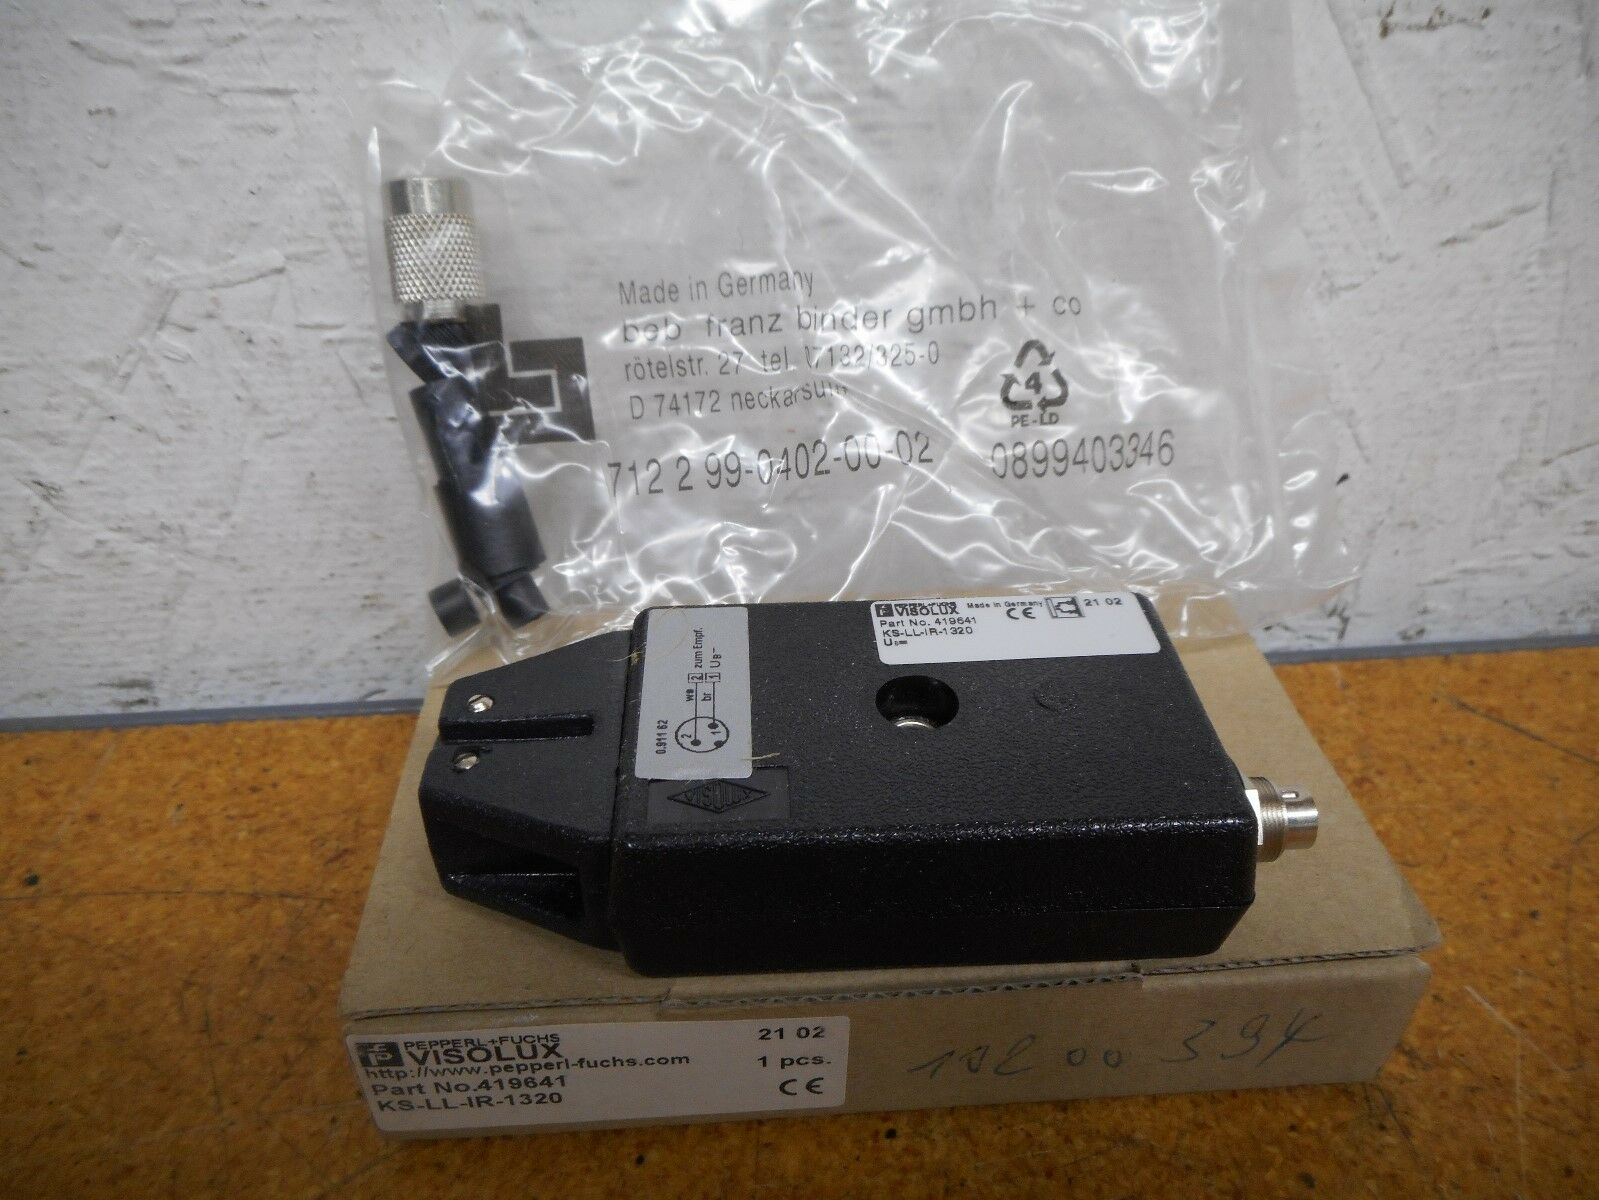 Pepperl+Fuchs VISOLUX 419641 KS-LL-IR-1320 Photoelectric Sensor New